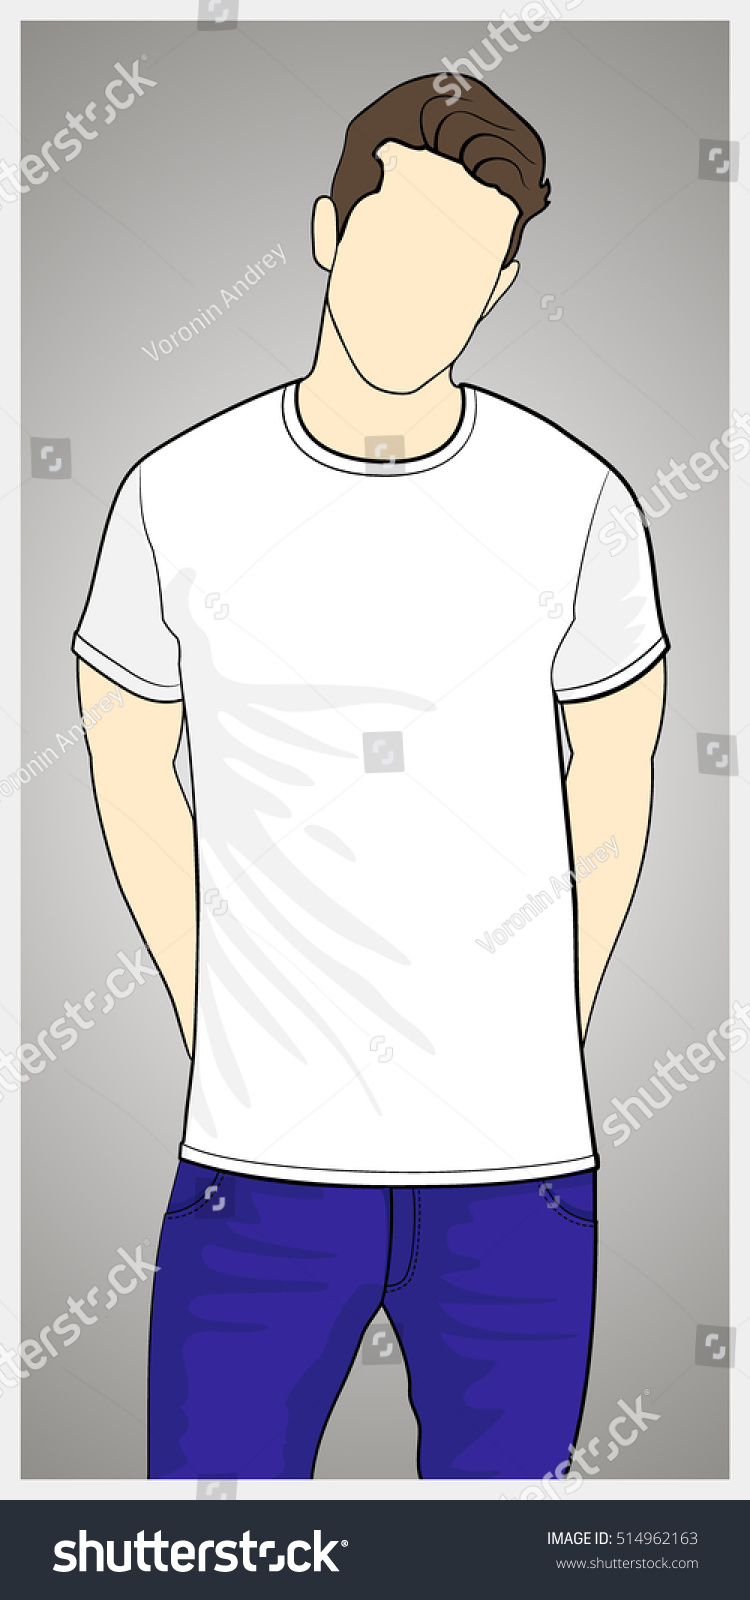 White t shirt eps - T Shirt Template Front View On The Man Man Body Silhouette White Color